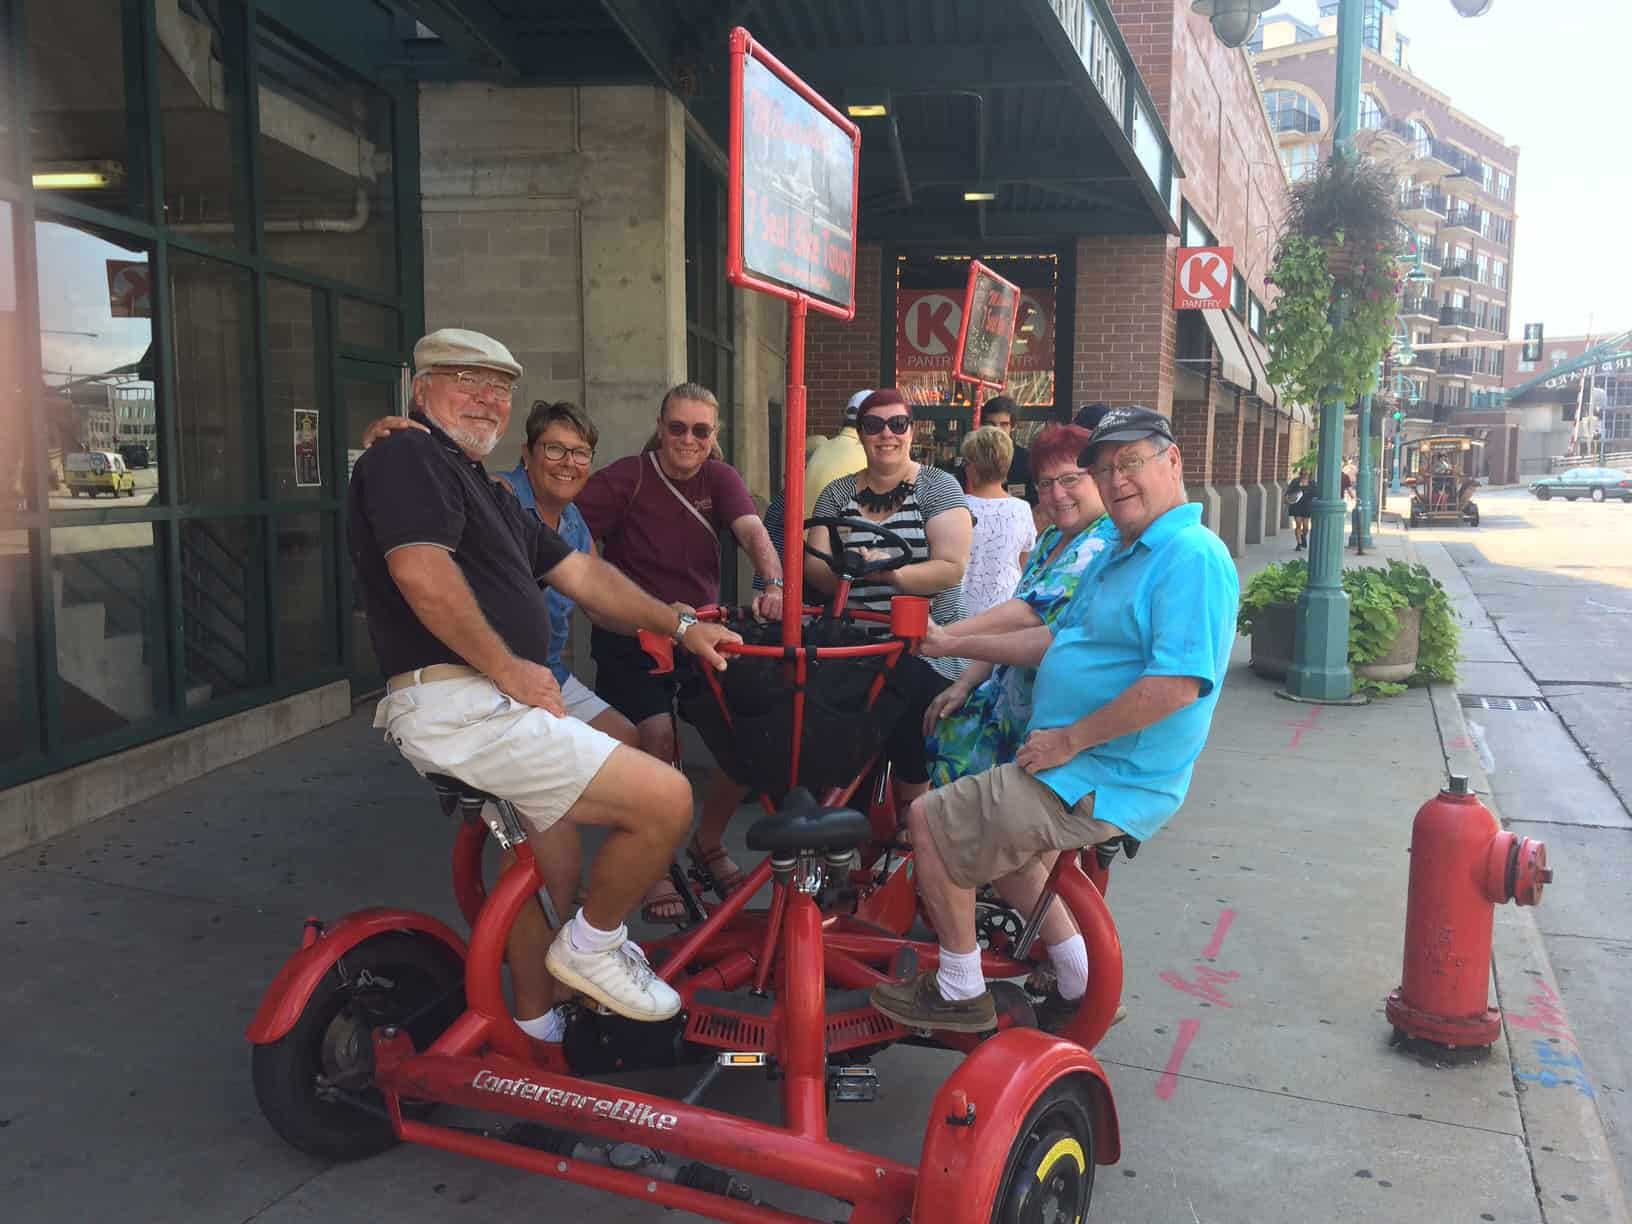 Milwaukee Seven Seat Bike Tours- at starting point on Chicago and water Streets